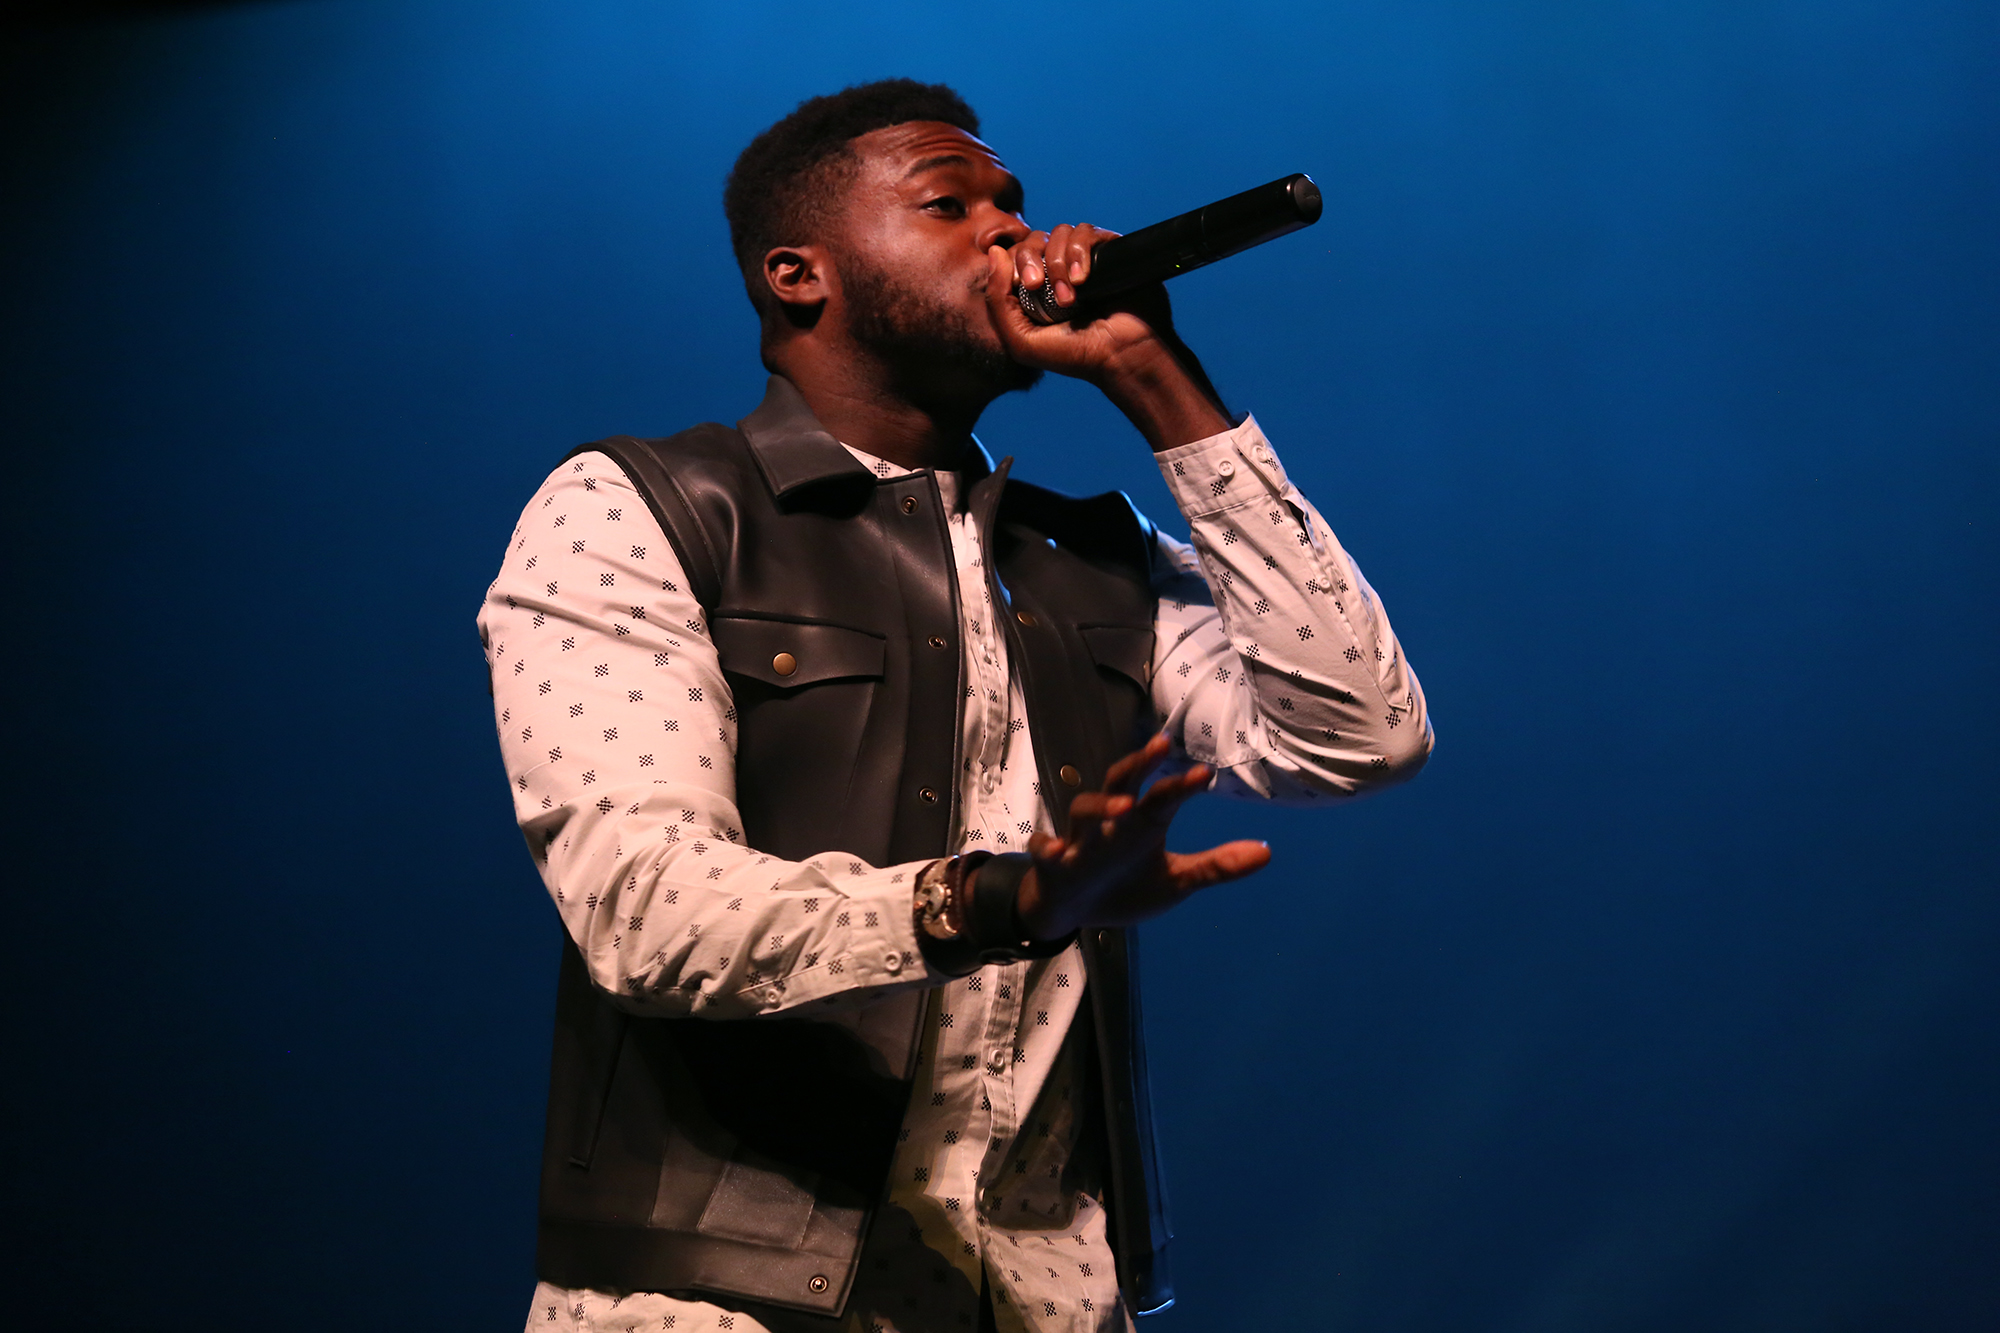 Governor's School for the Arts alumnus (and member of the Grammy-award winning group Pentatonix) Kevin Olusola came home to GSA this summer, visiting with students and encouraging them to be the best artists they can be.